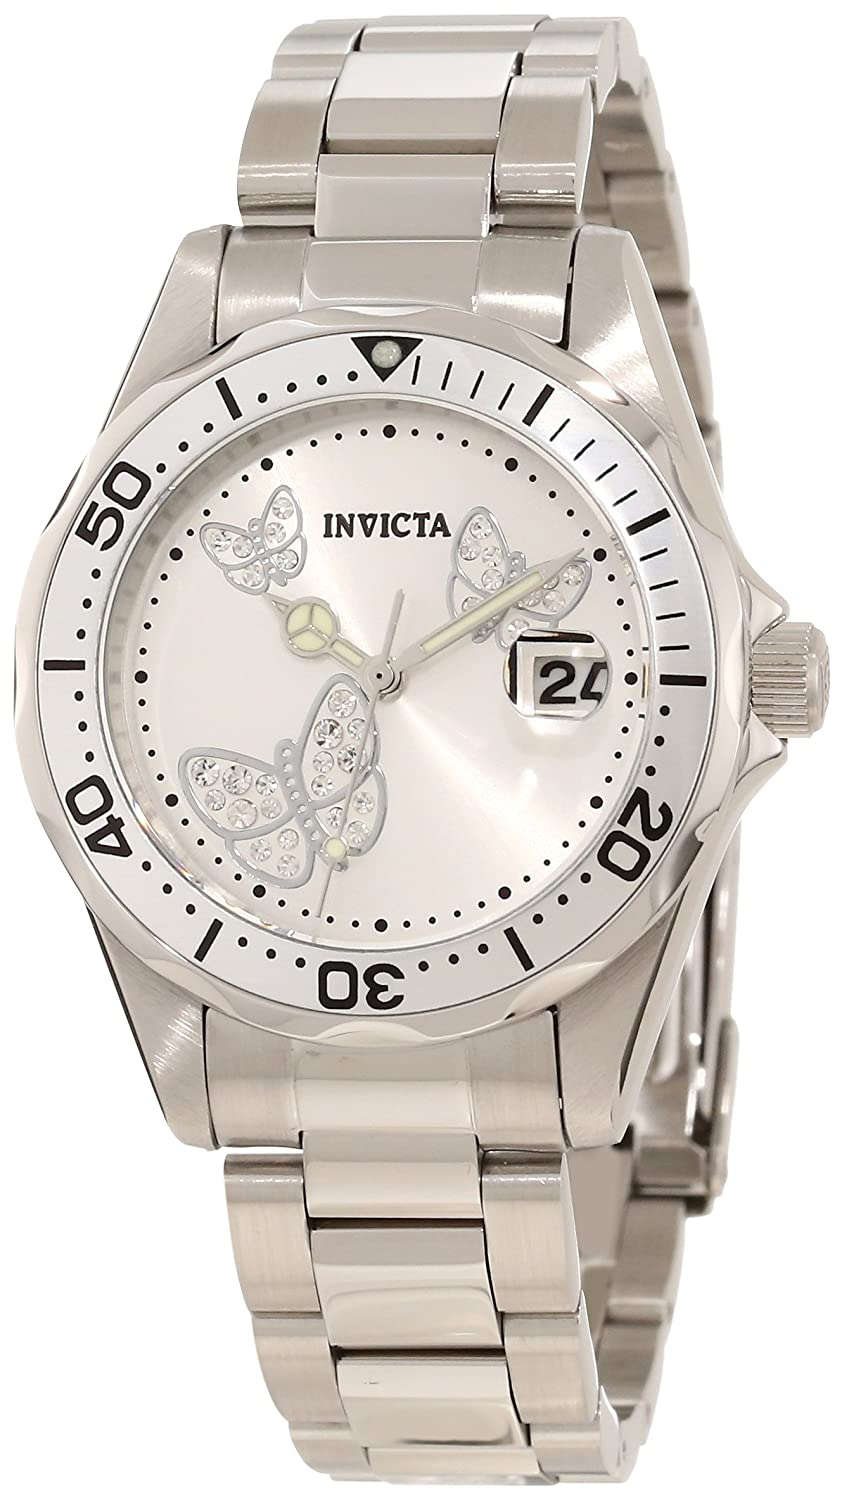 Amazon.com: Invicta Womens 12503 Pro Diver Silver Dial Watch: Invicta: Watches